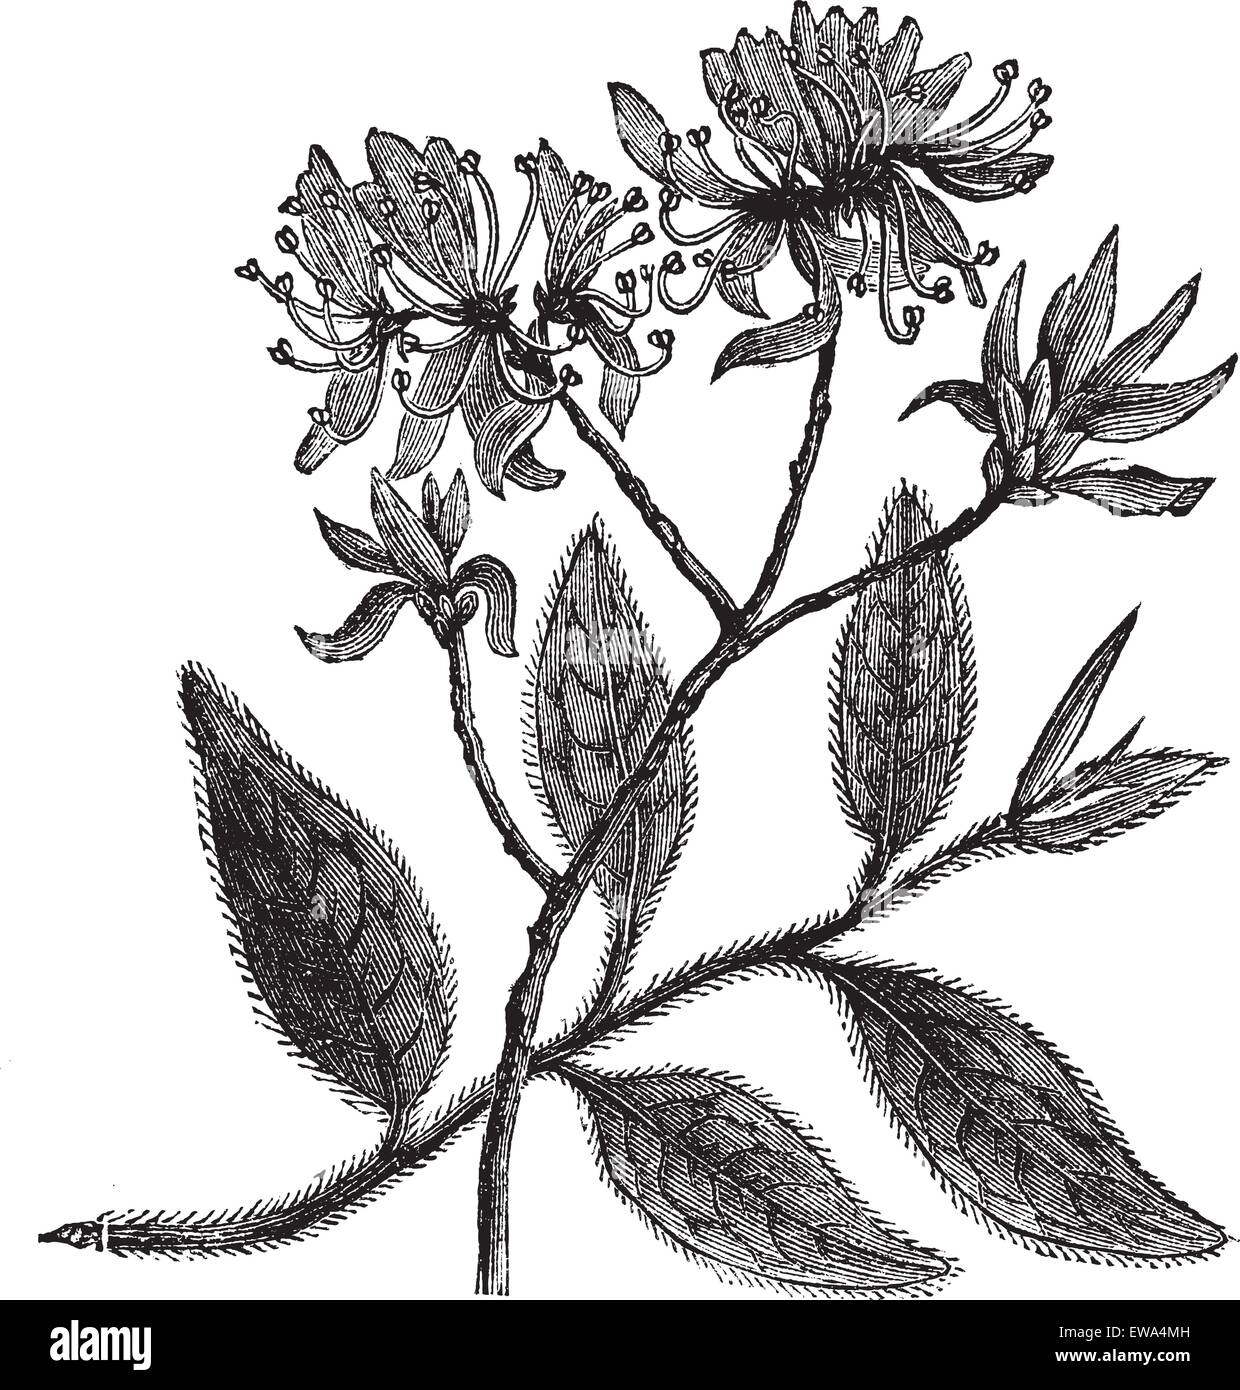 Rhodora or Rhododendron canadense, vintage engraving. Old engraved illustration of Rhodora isolated on a white background. - Stock Vector